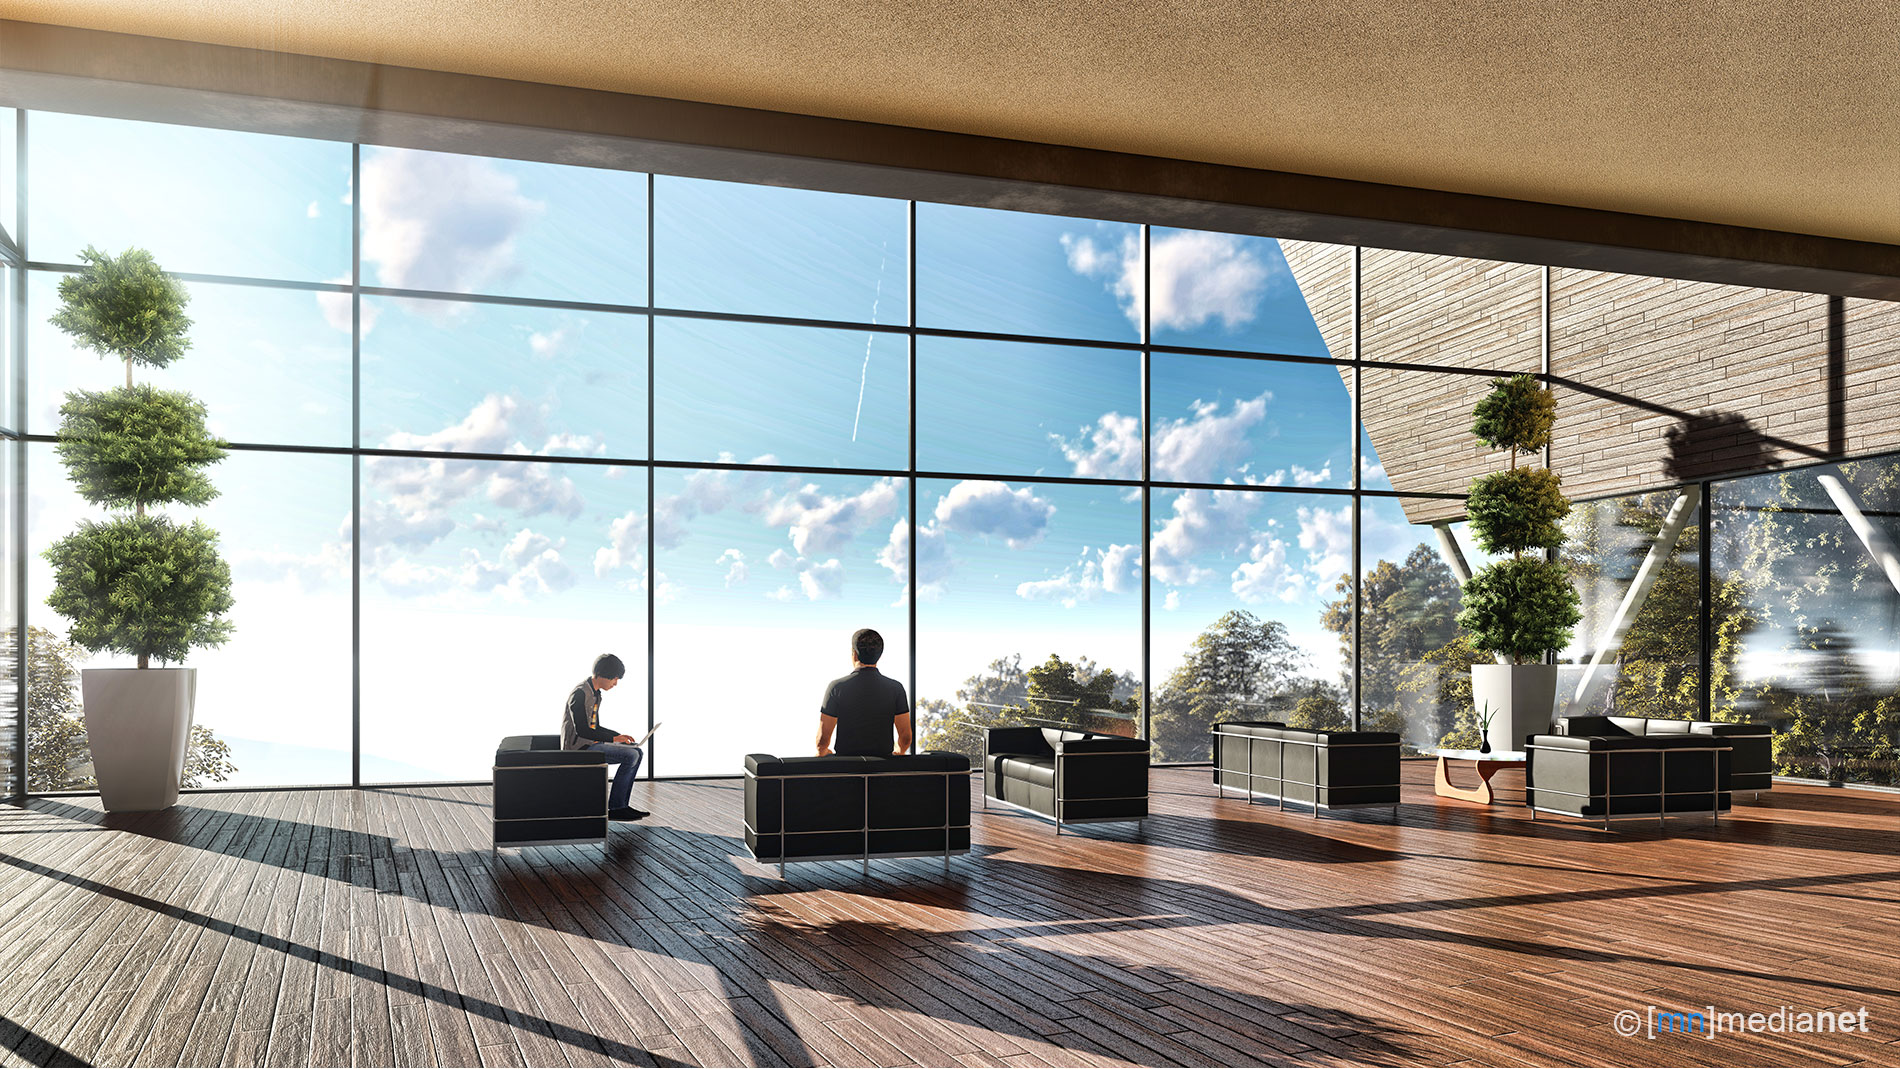 shooting range concept building with sky view sitting area